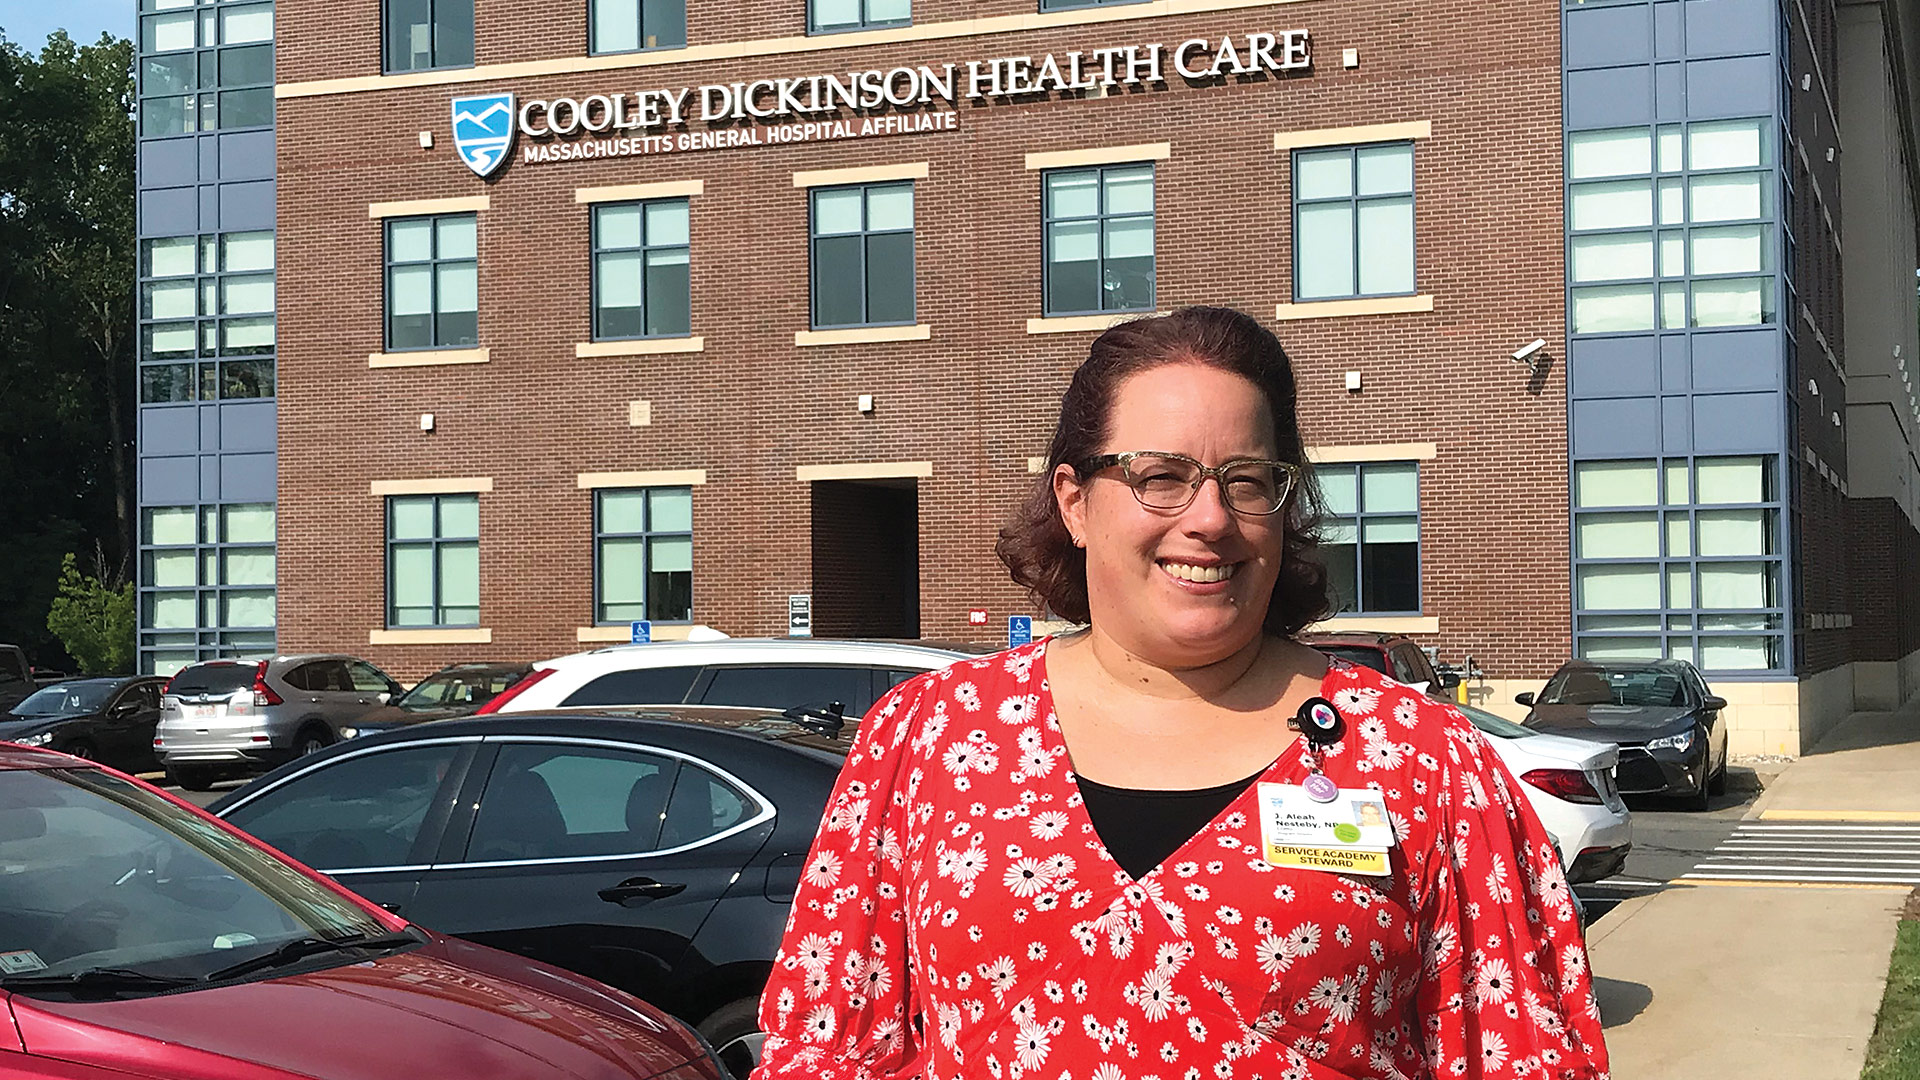 After years of pioneering work at Cooley Dickinson, Aleah Nesteby is taking her passion and talents to Transhealth Northampton.